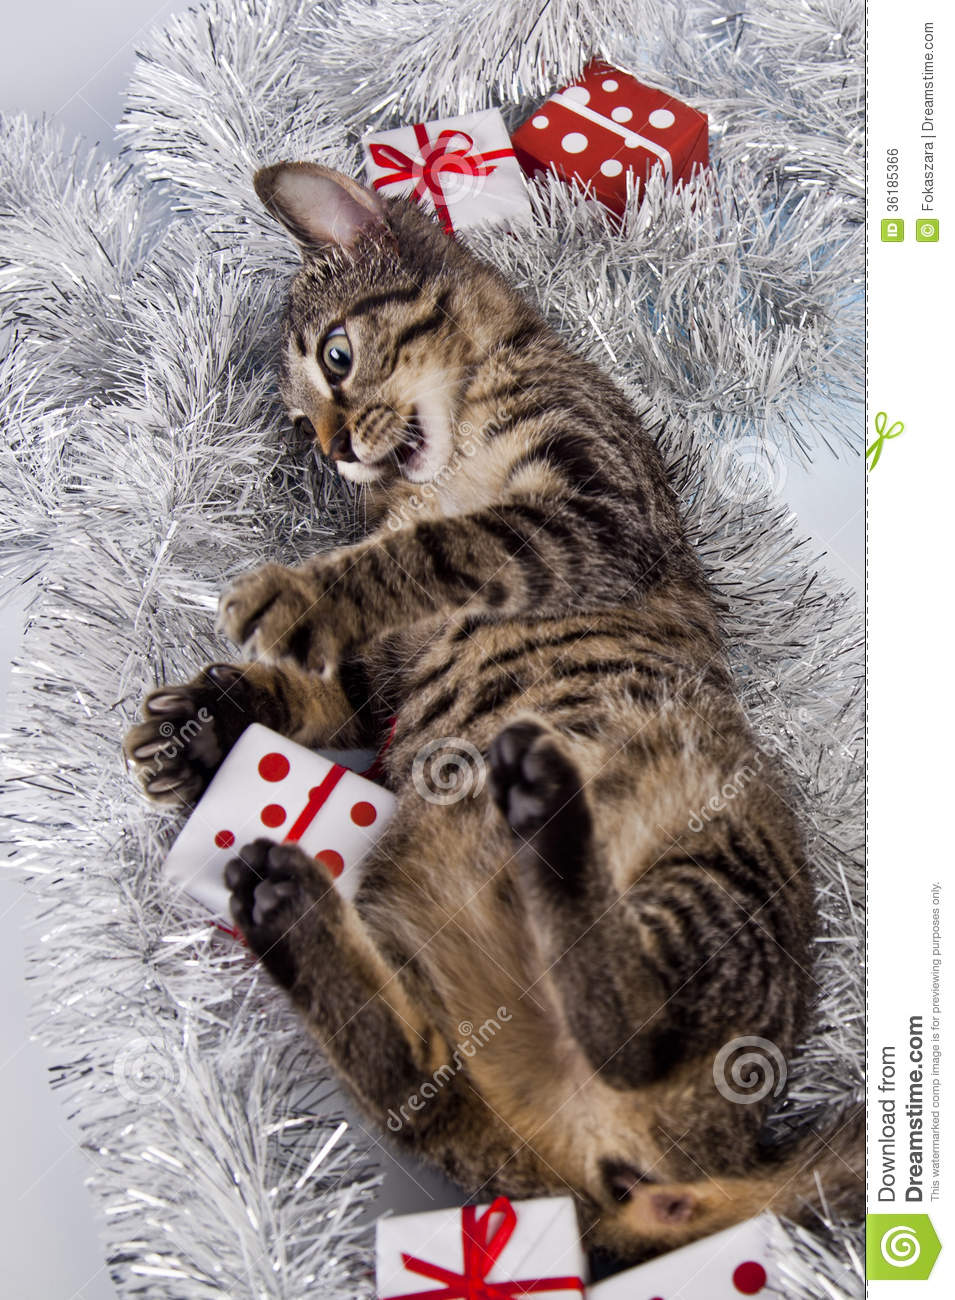 Cat, Christmas, Present Royalty Free Stock Image - Image: 36185366